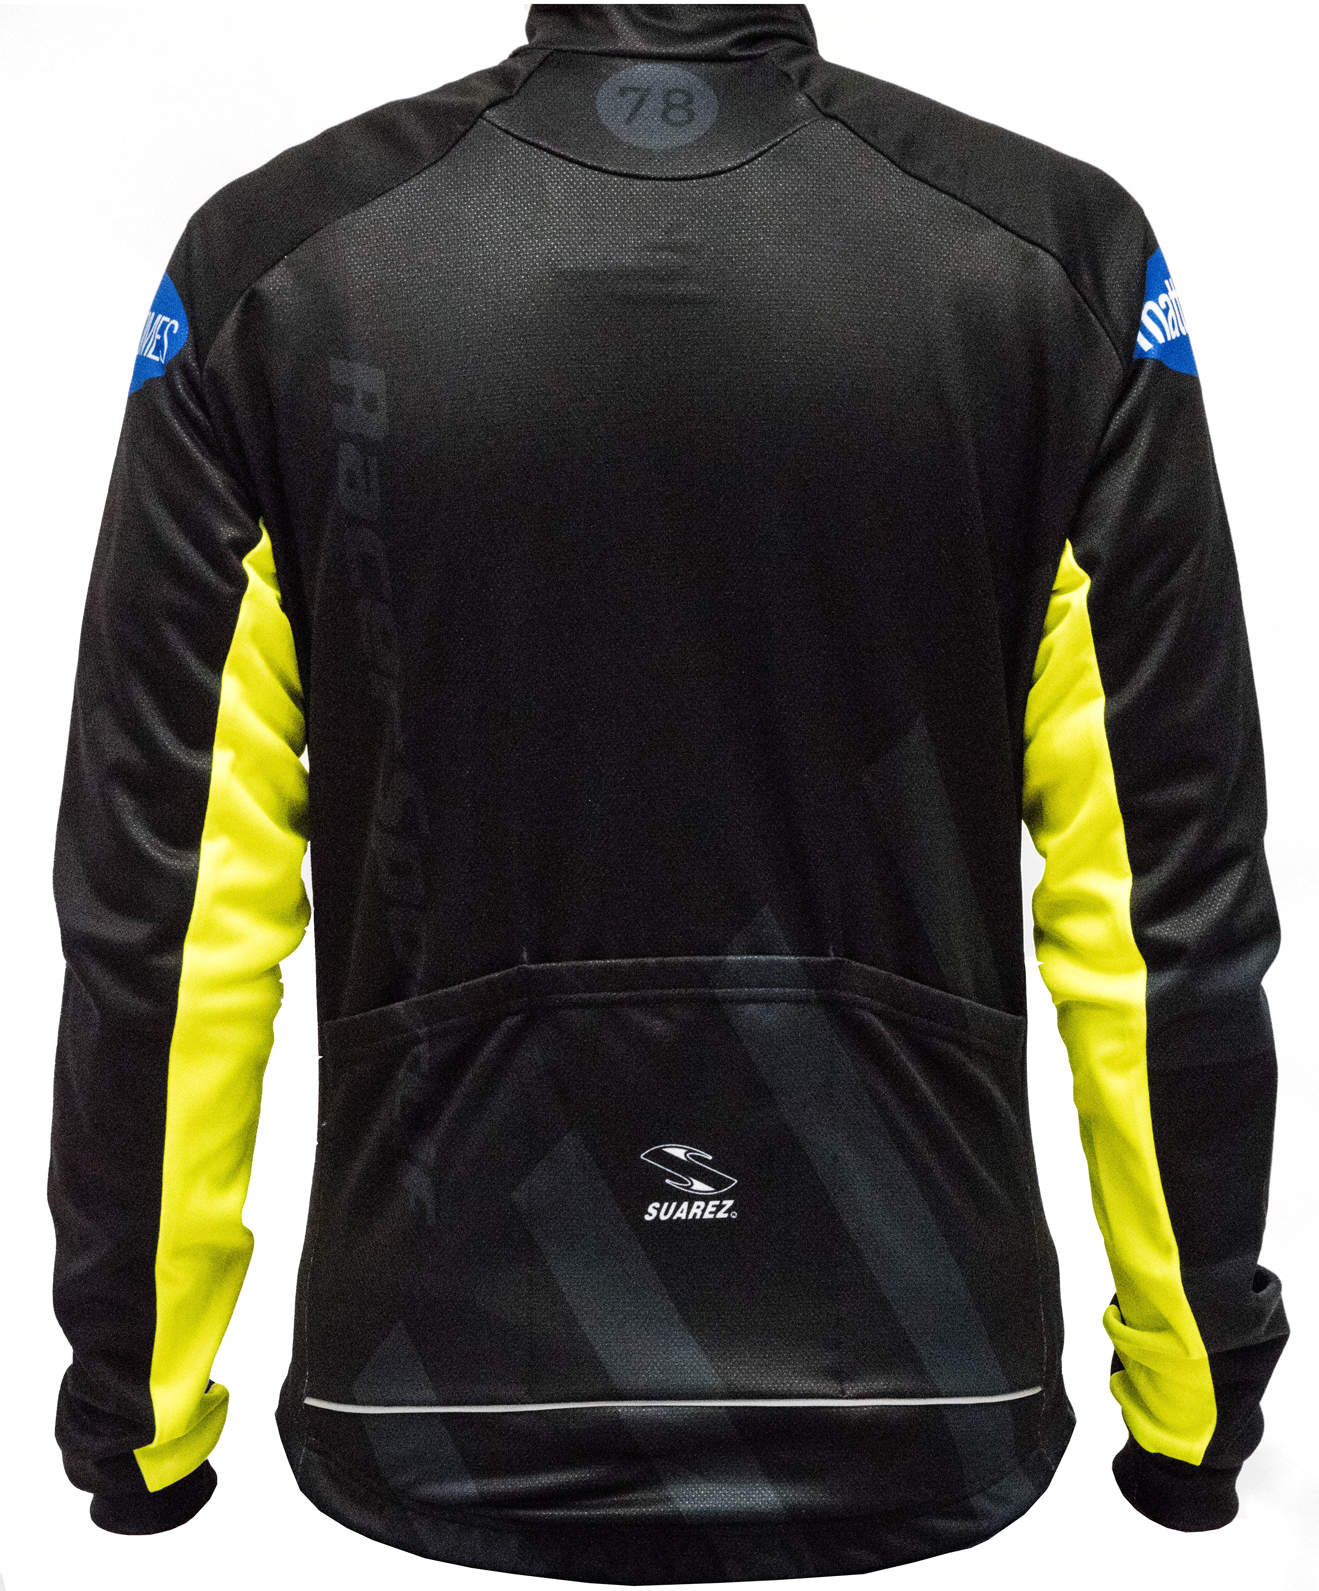 Racer Sportif Club Winter Jacket - Racer Sportif